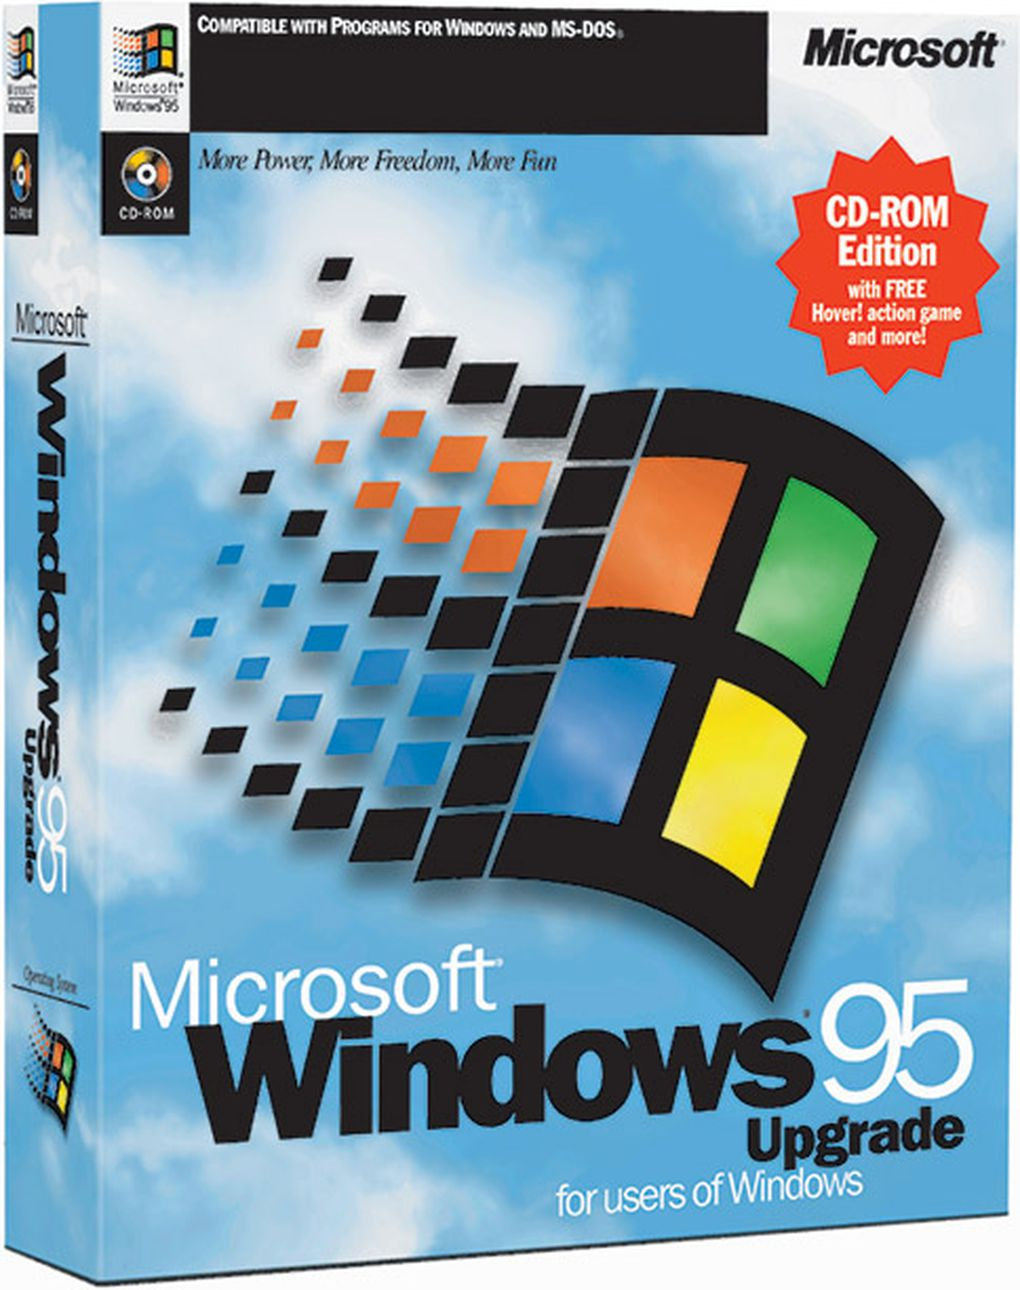 Windows95 20 cm gigazine for Windows 95 startup sound